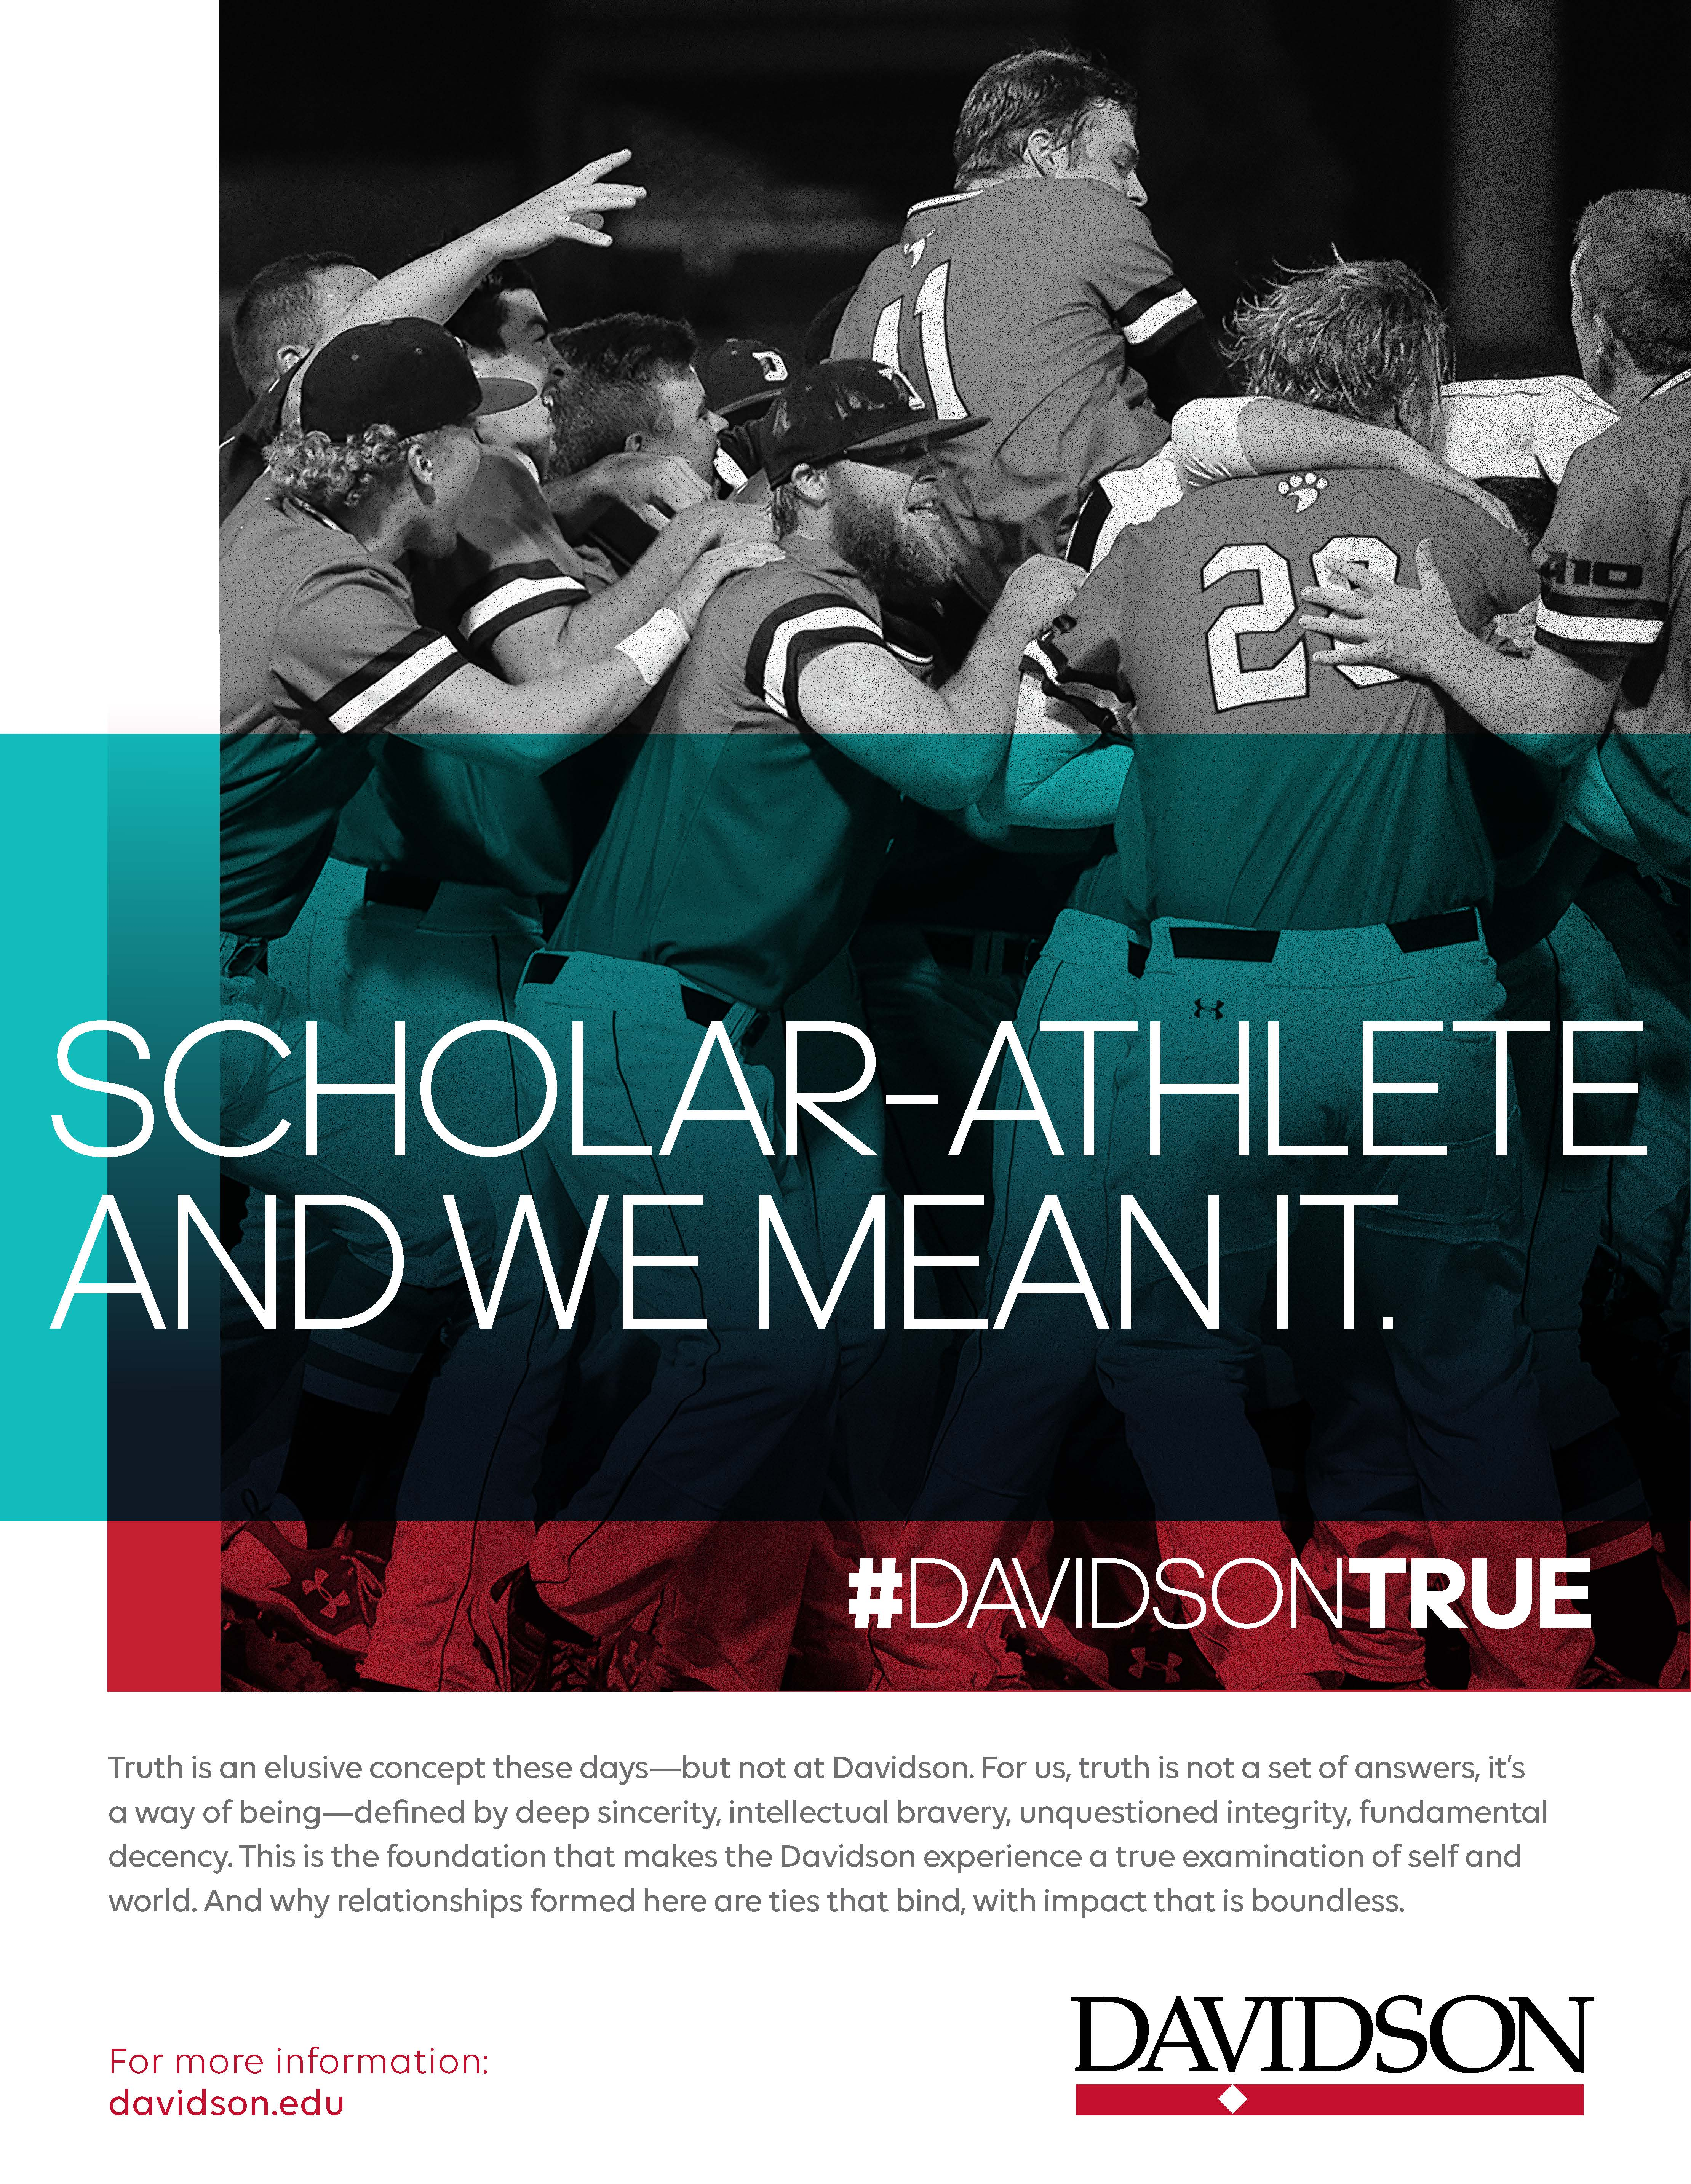 """Baseball team with overlaid """"Scholar-athlete and we mean it."""""""